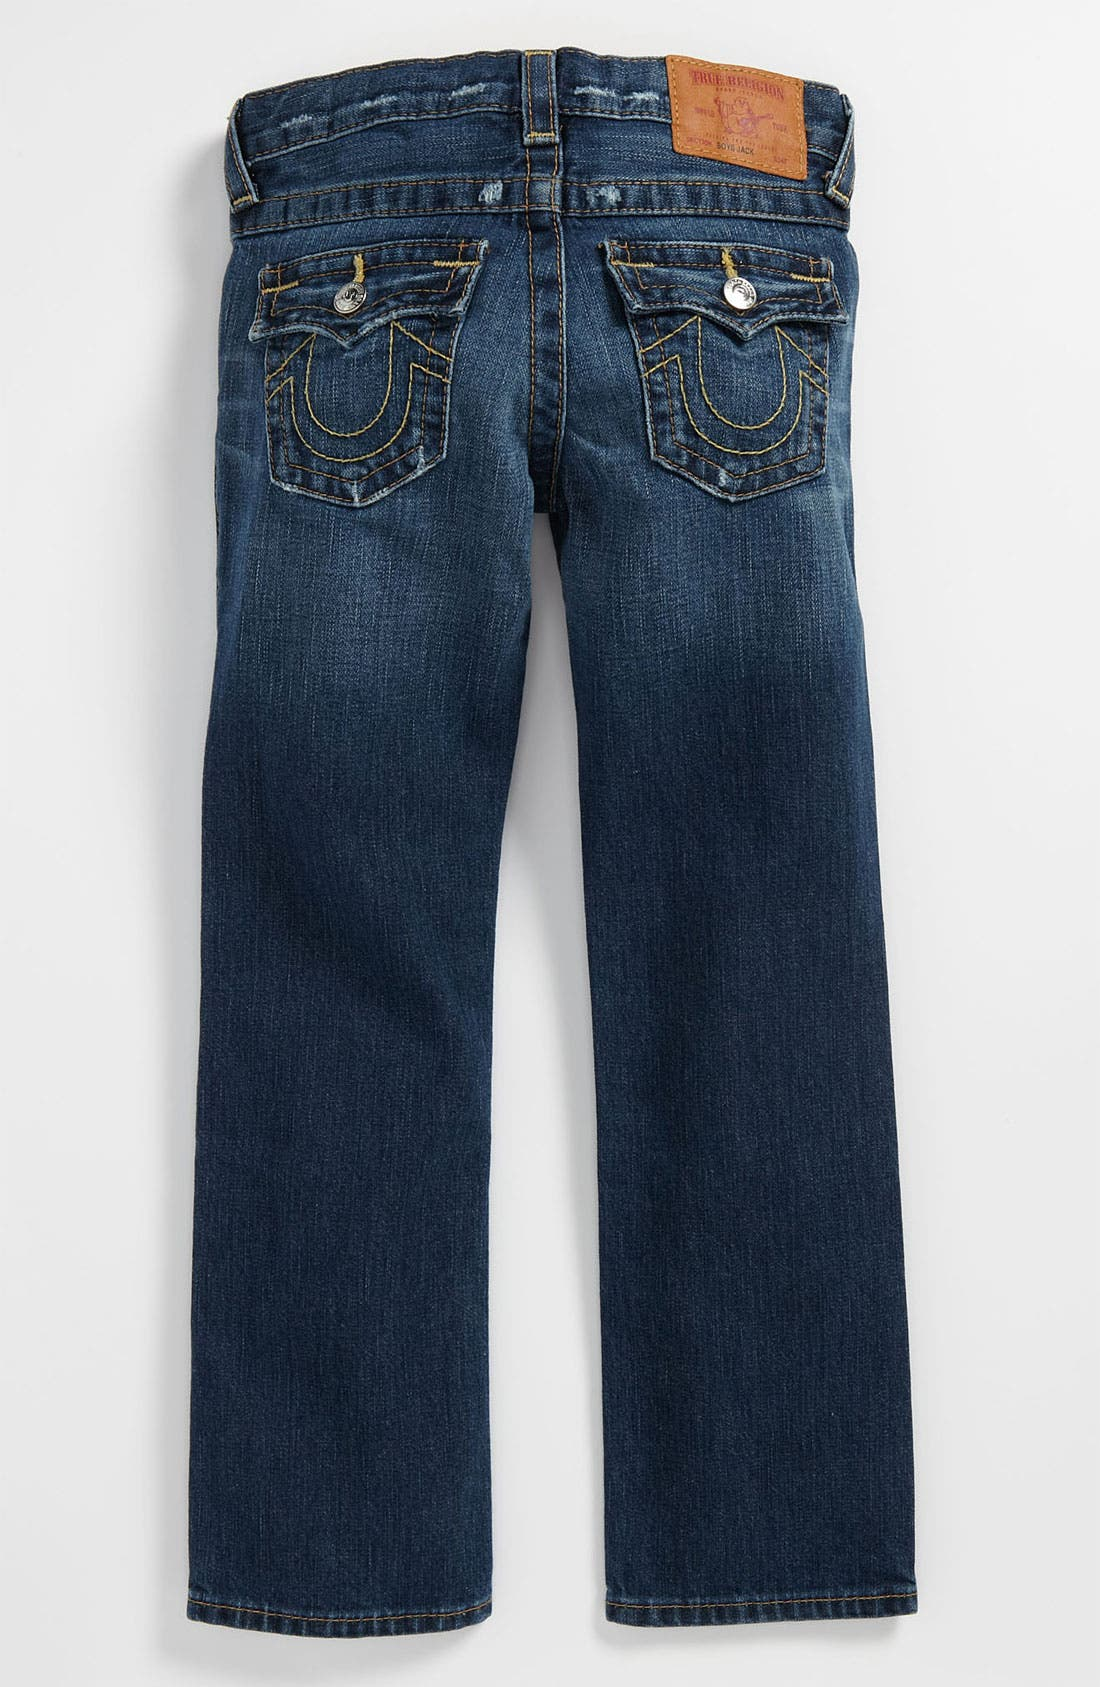 Main Image - True Religion Brand Jeans 'Jack Rip & Repair' Jeans (Big Boys)